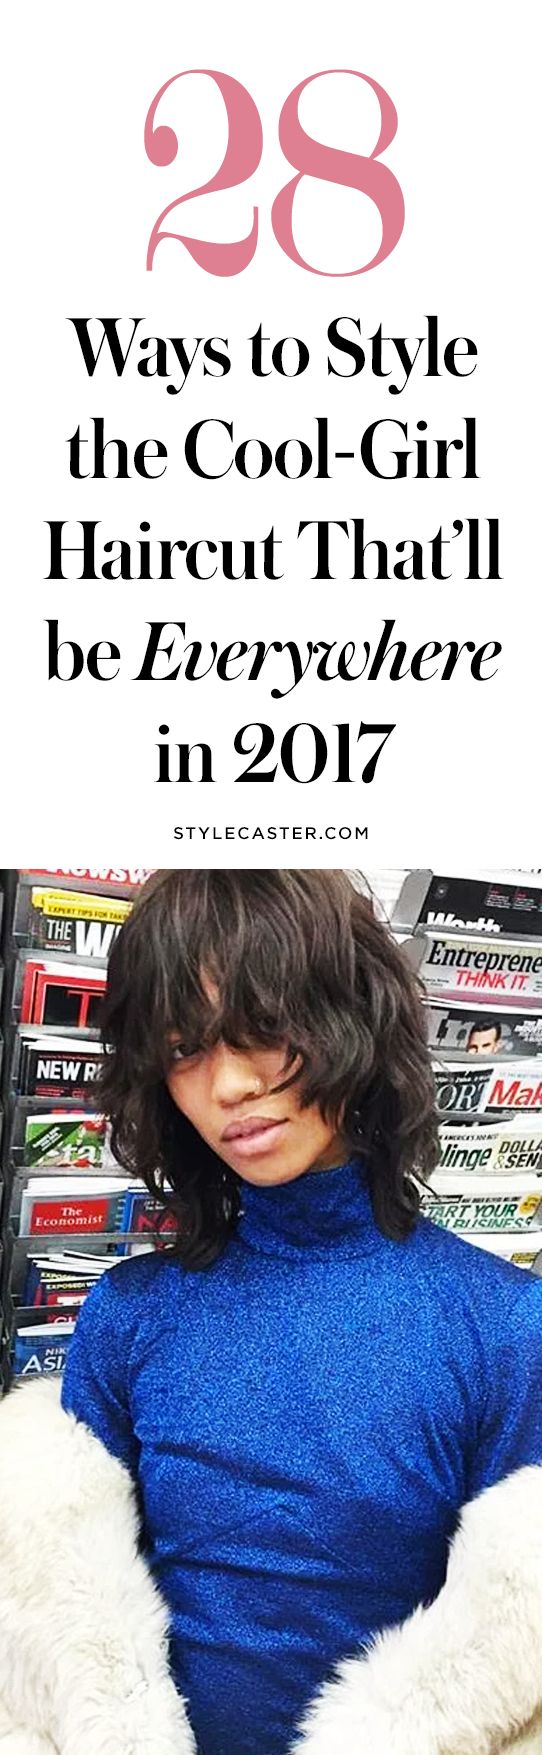 28 ways to style the coolest hair trend for 2017 | the bob with bangs | short hairstyle inspo | @stylecaster